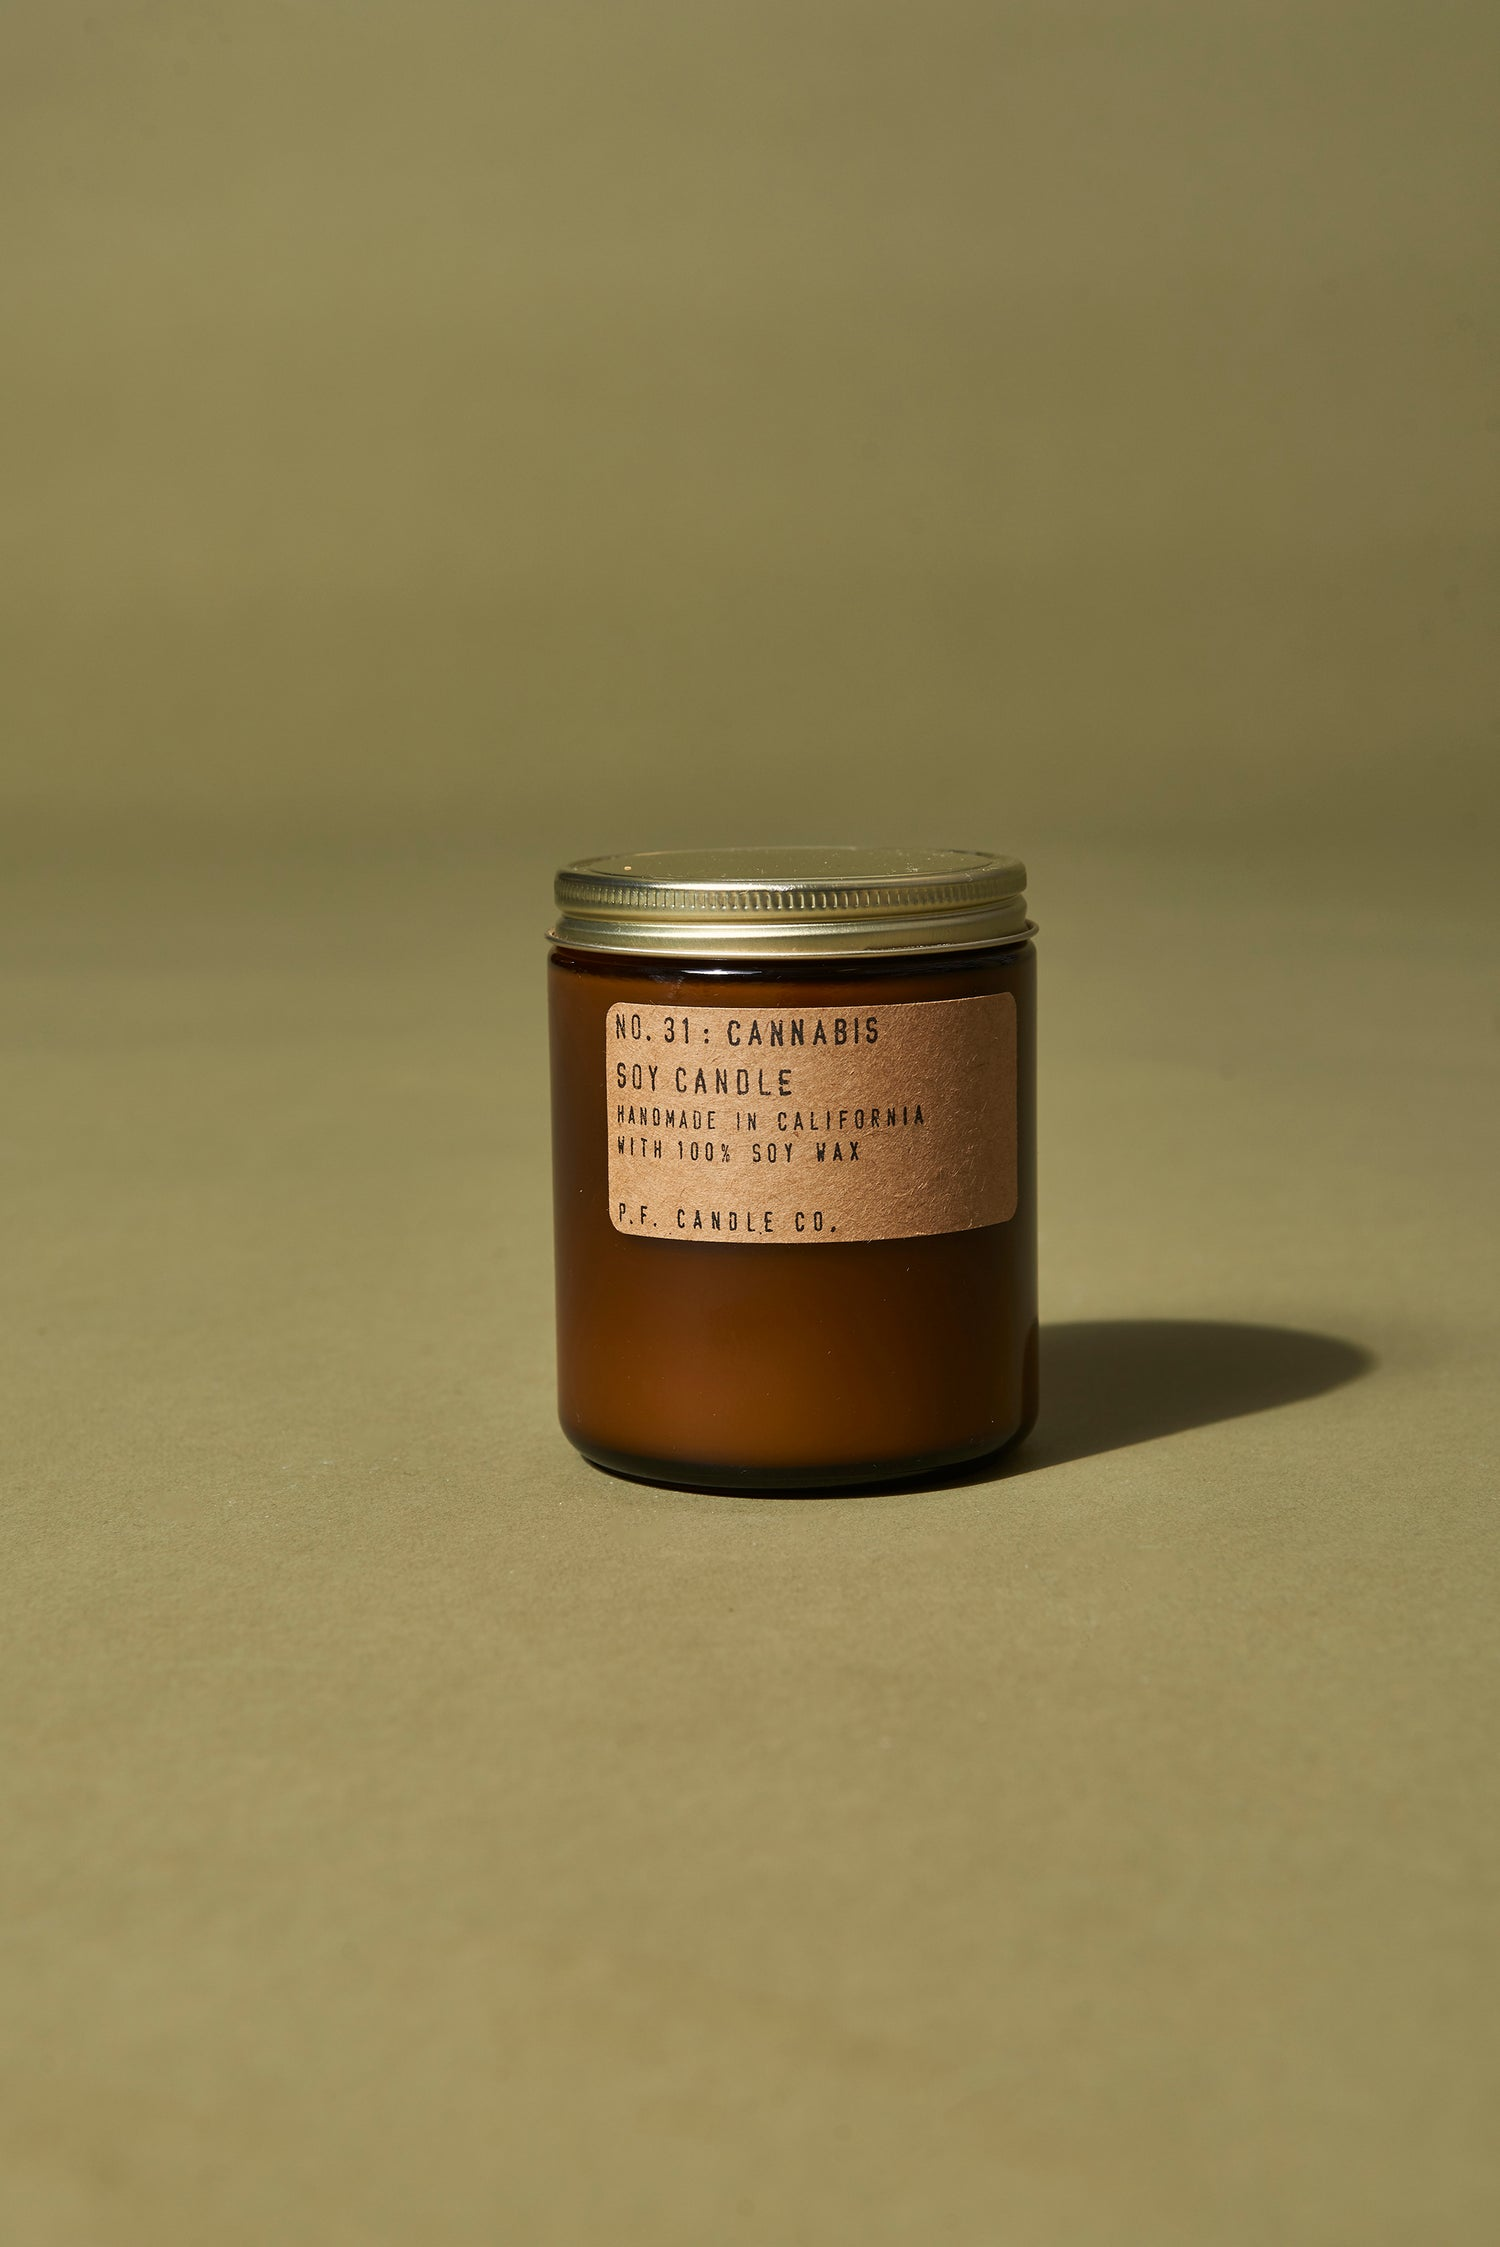 P.F. Candle Co. 7.2 oz Soy Candle